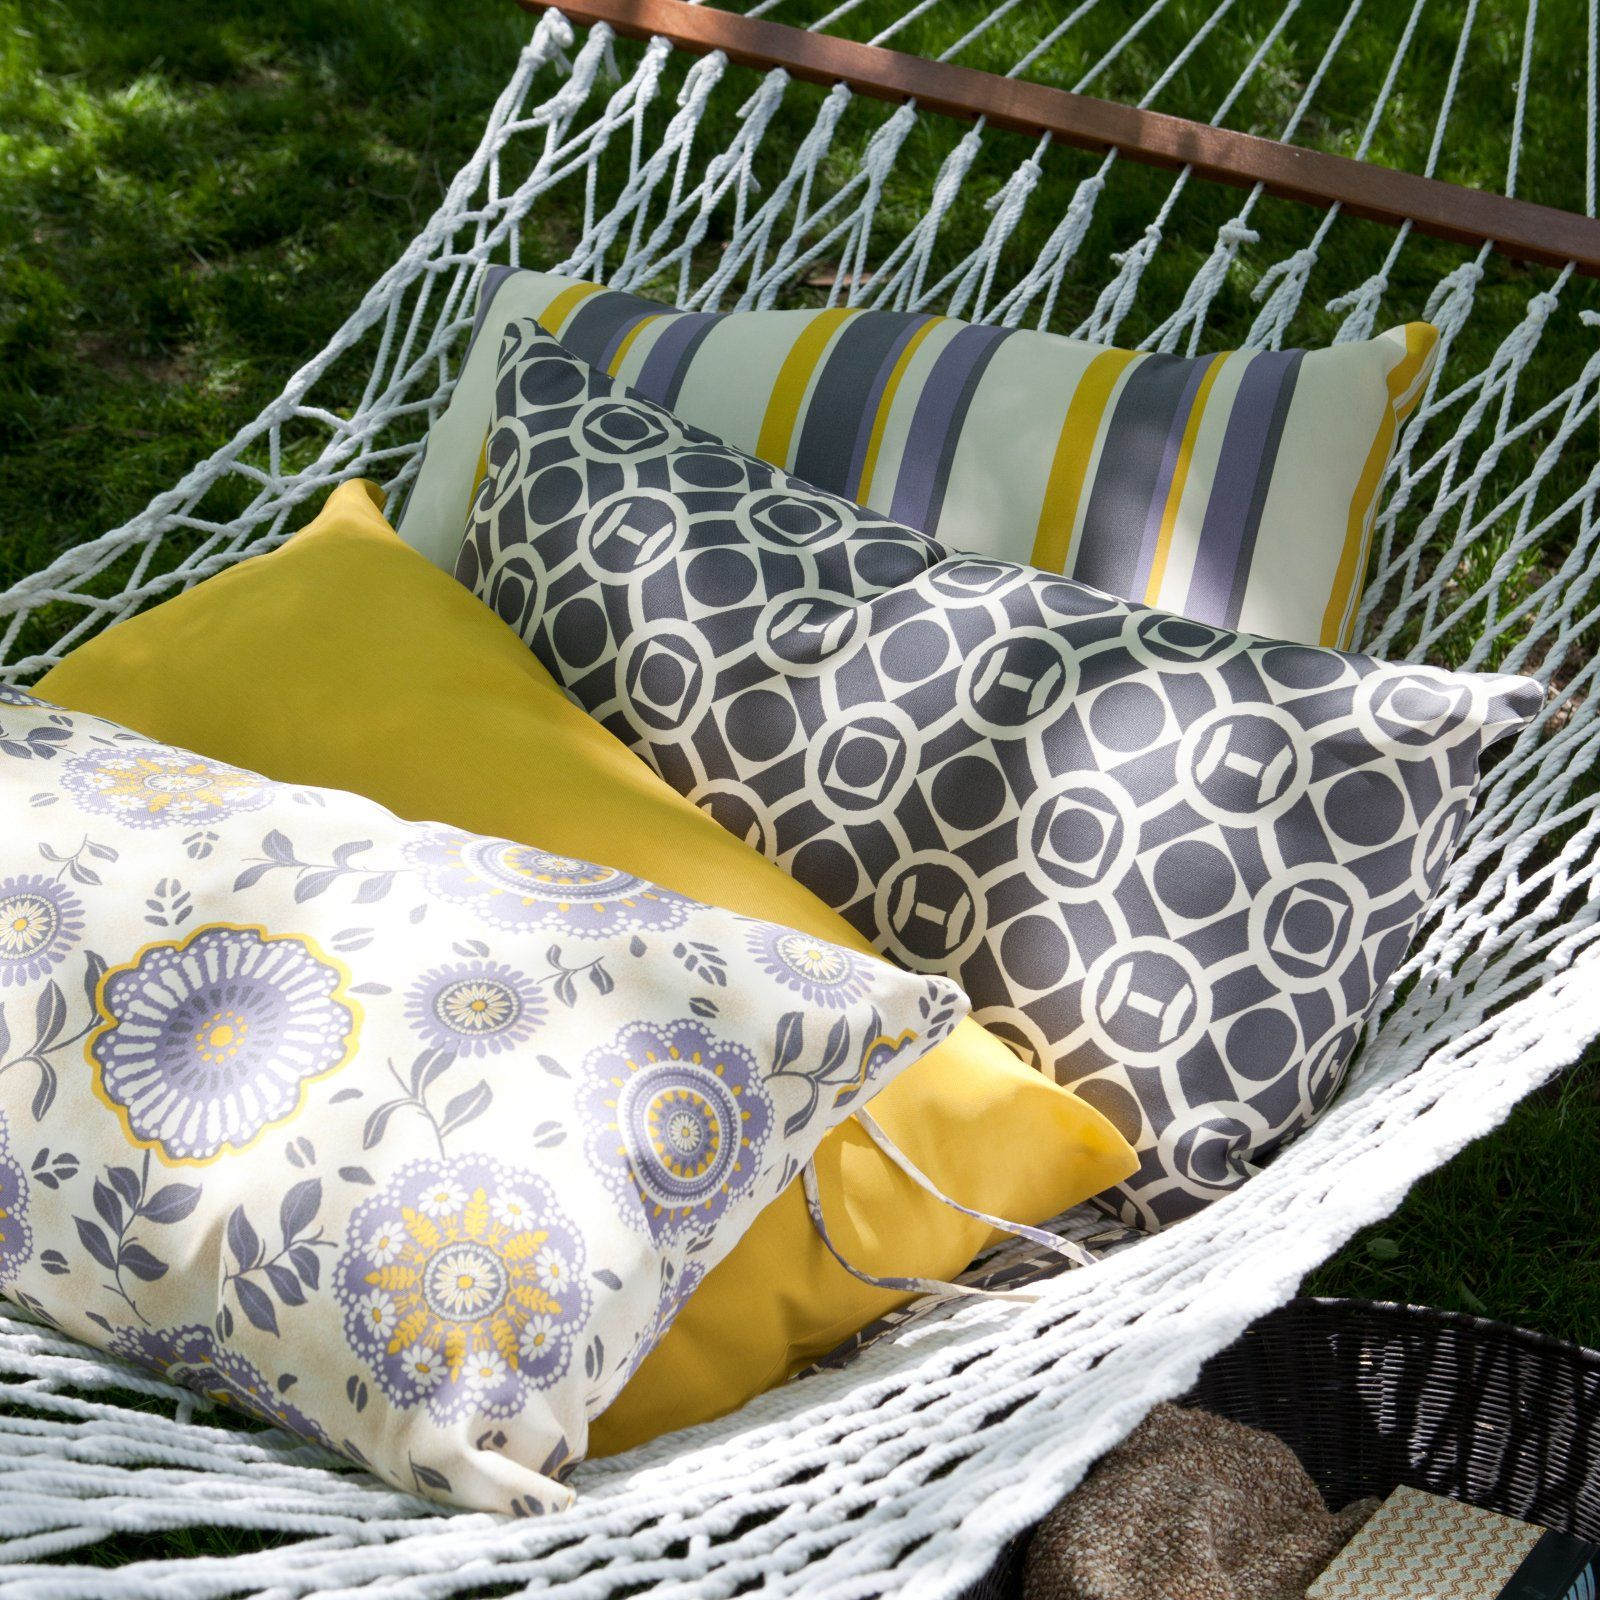 it pillows three tell pi the let past blog doesn had maybe a just your that hammock for you we and buzzmills have diy summers already yard in t me